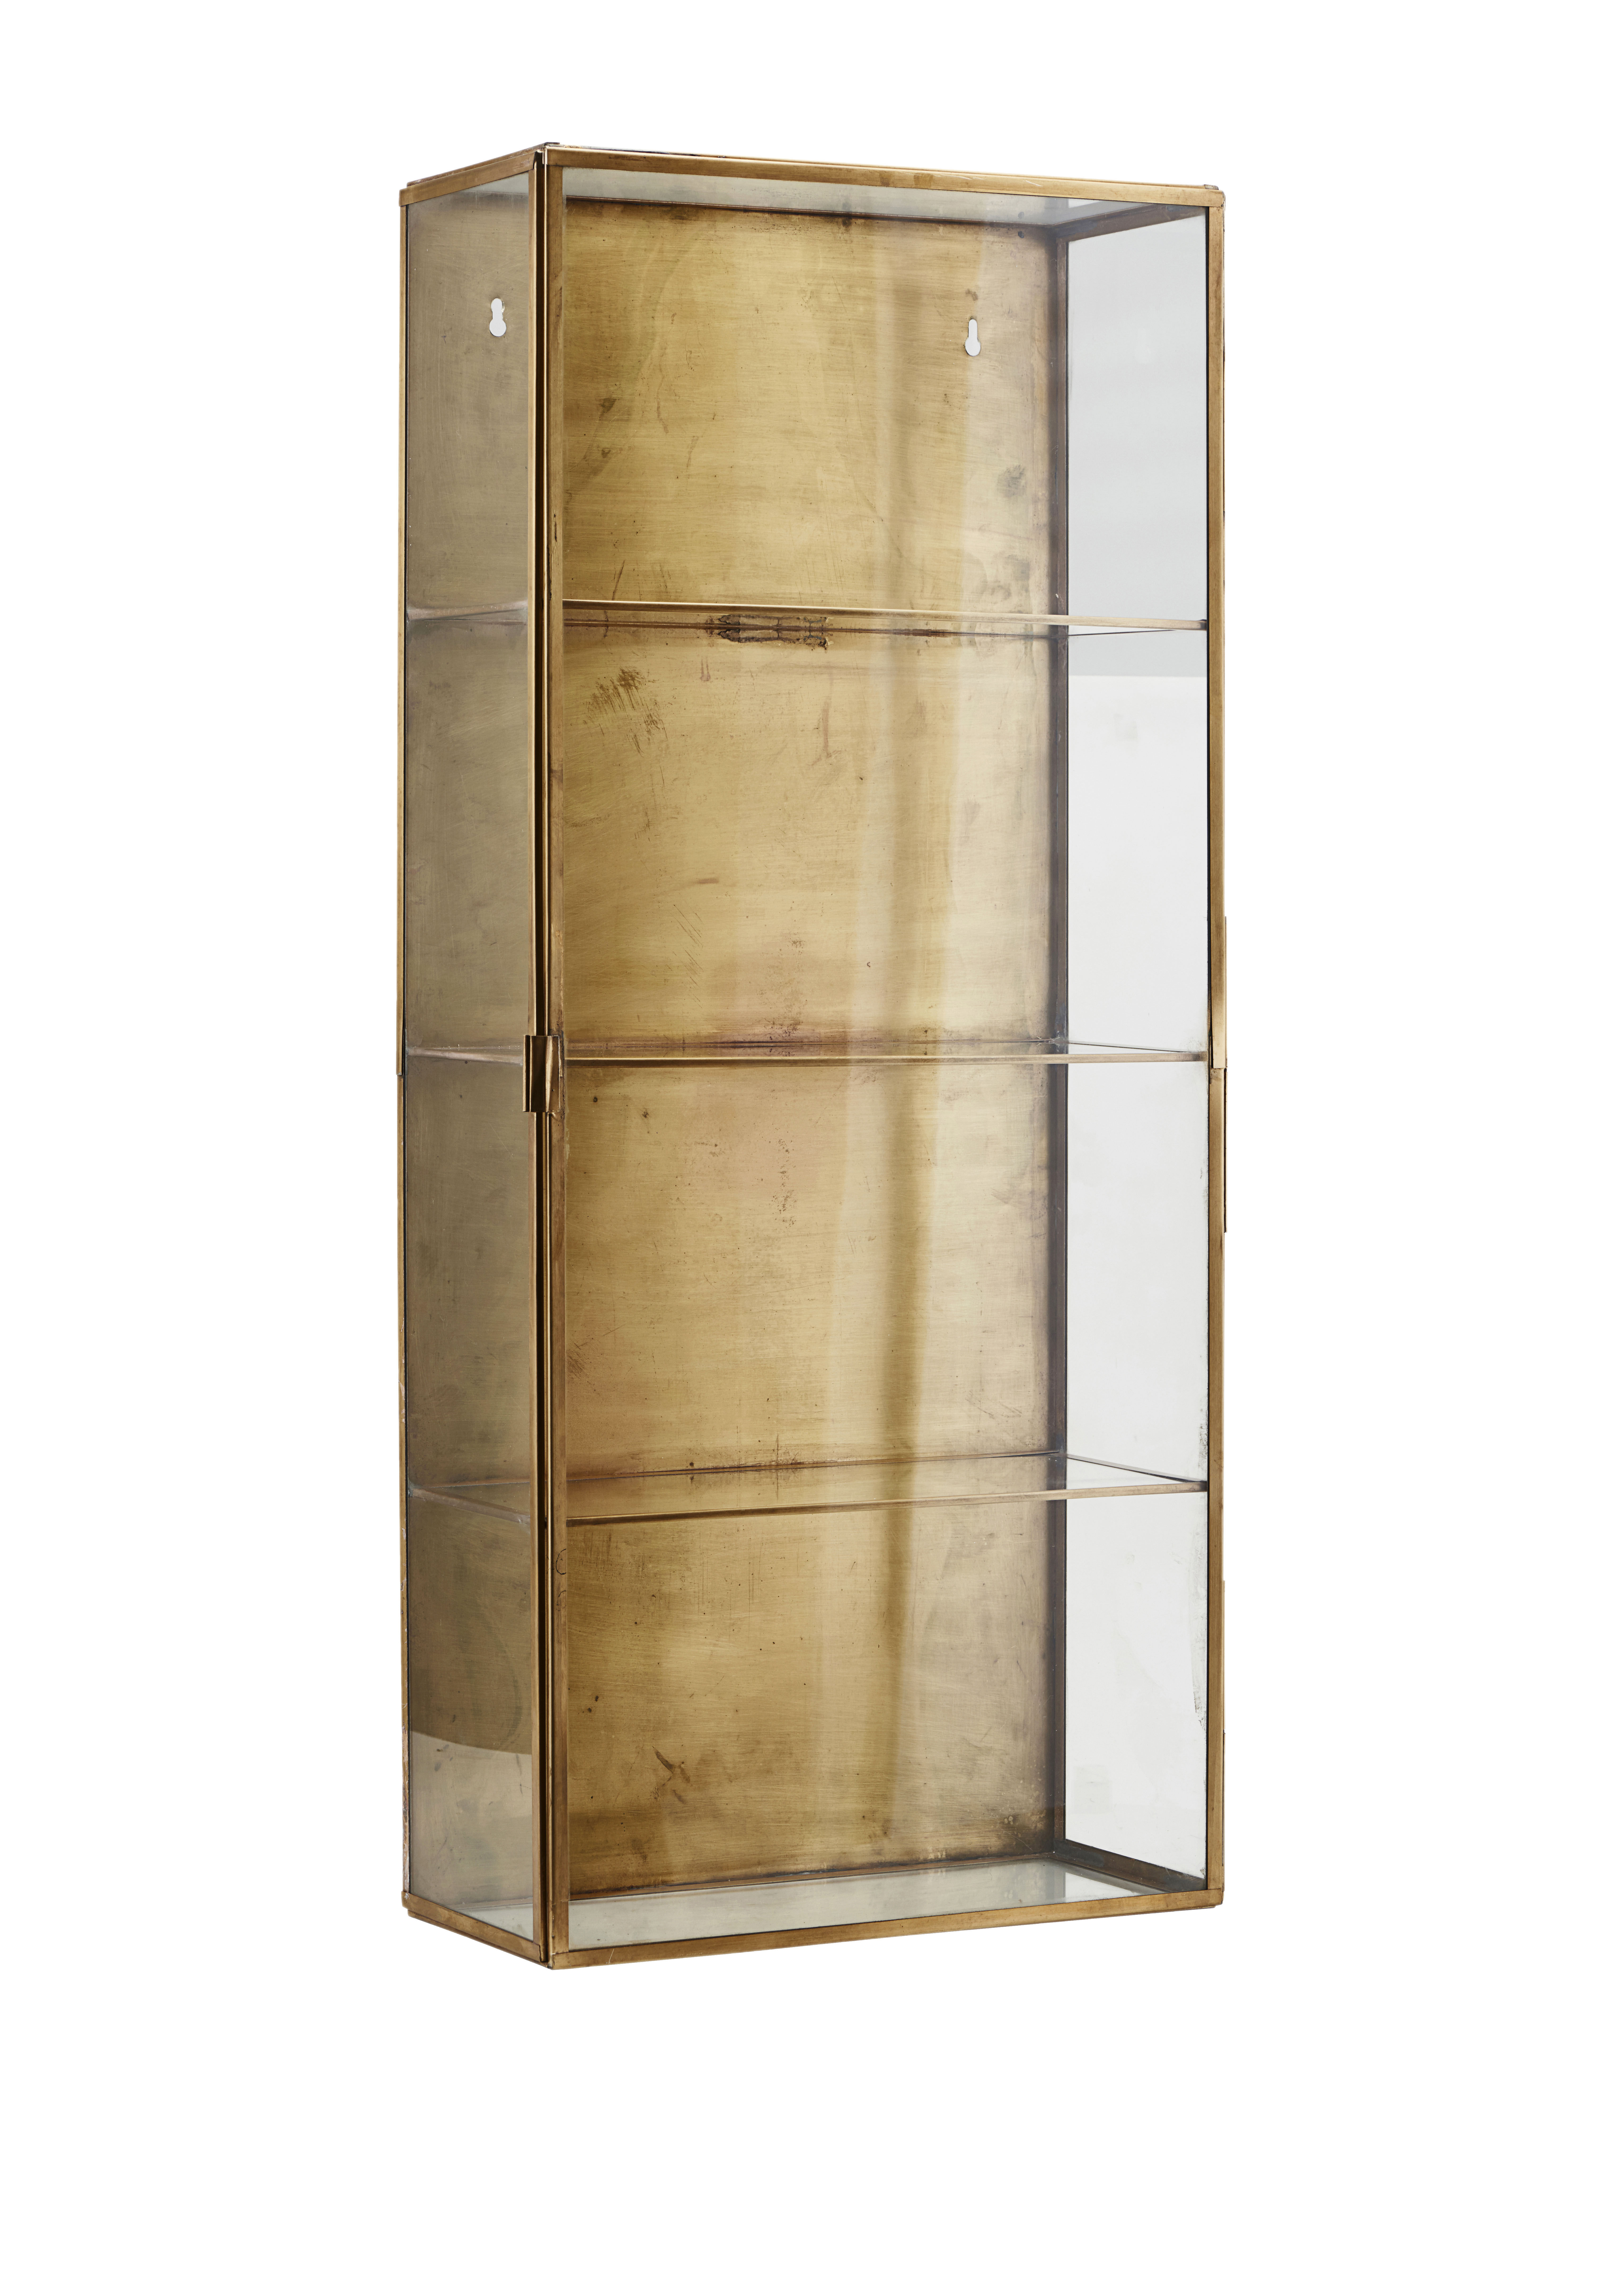 cabinet large wall storage showcase l 35 x h 80 cm large brass by house doctor. Black Bedroom Furniture Sets. Home Design Ideas